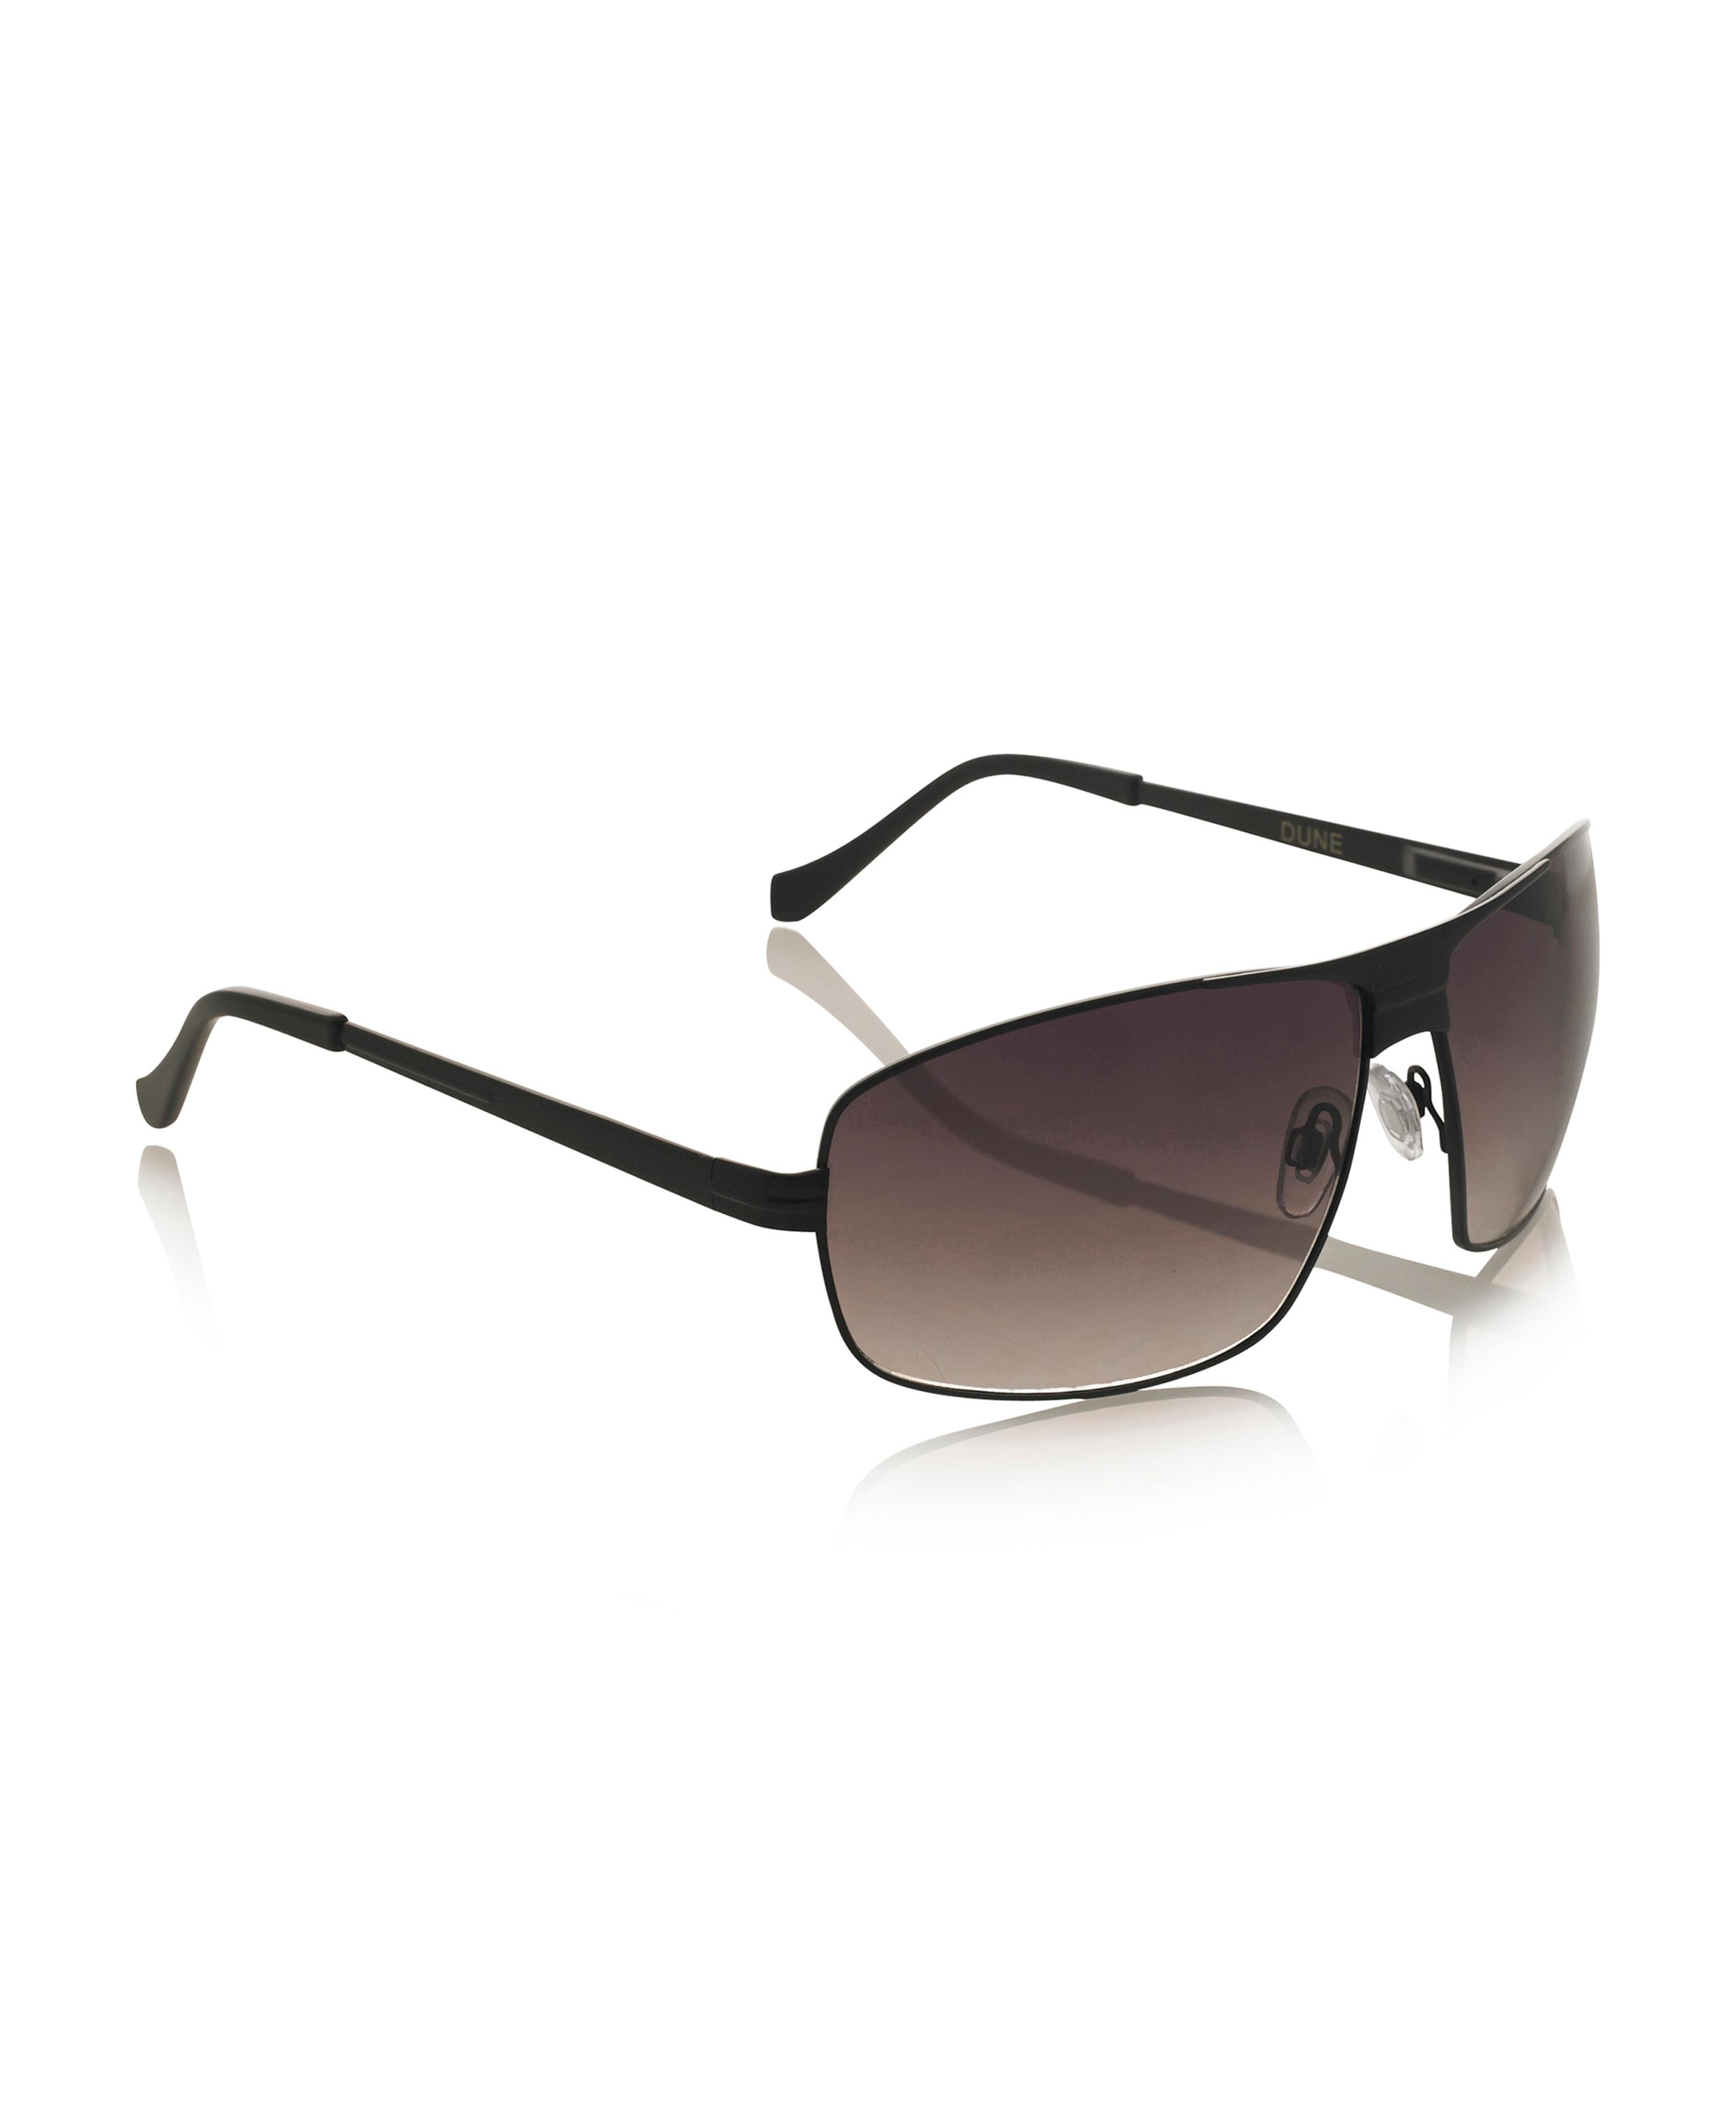 Prez black metal frame sunglasses